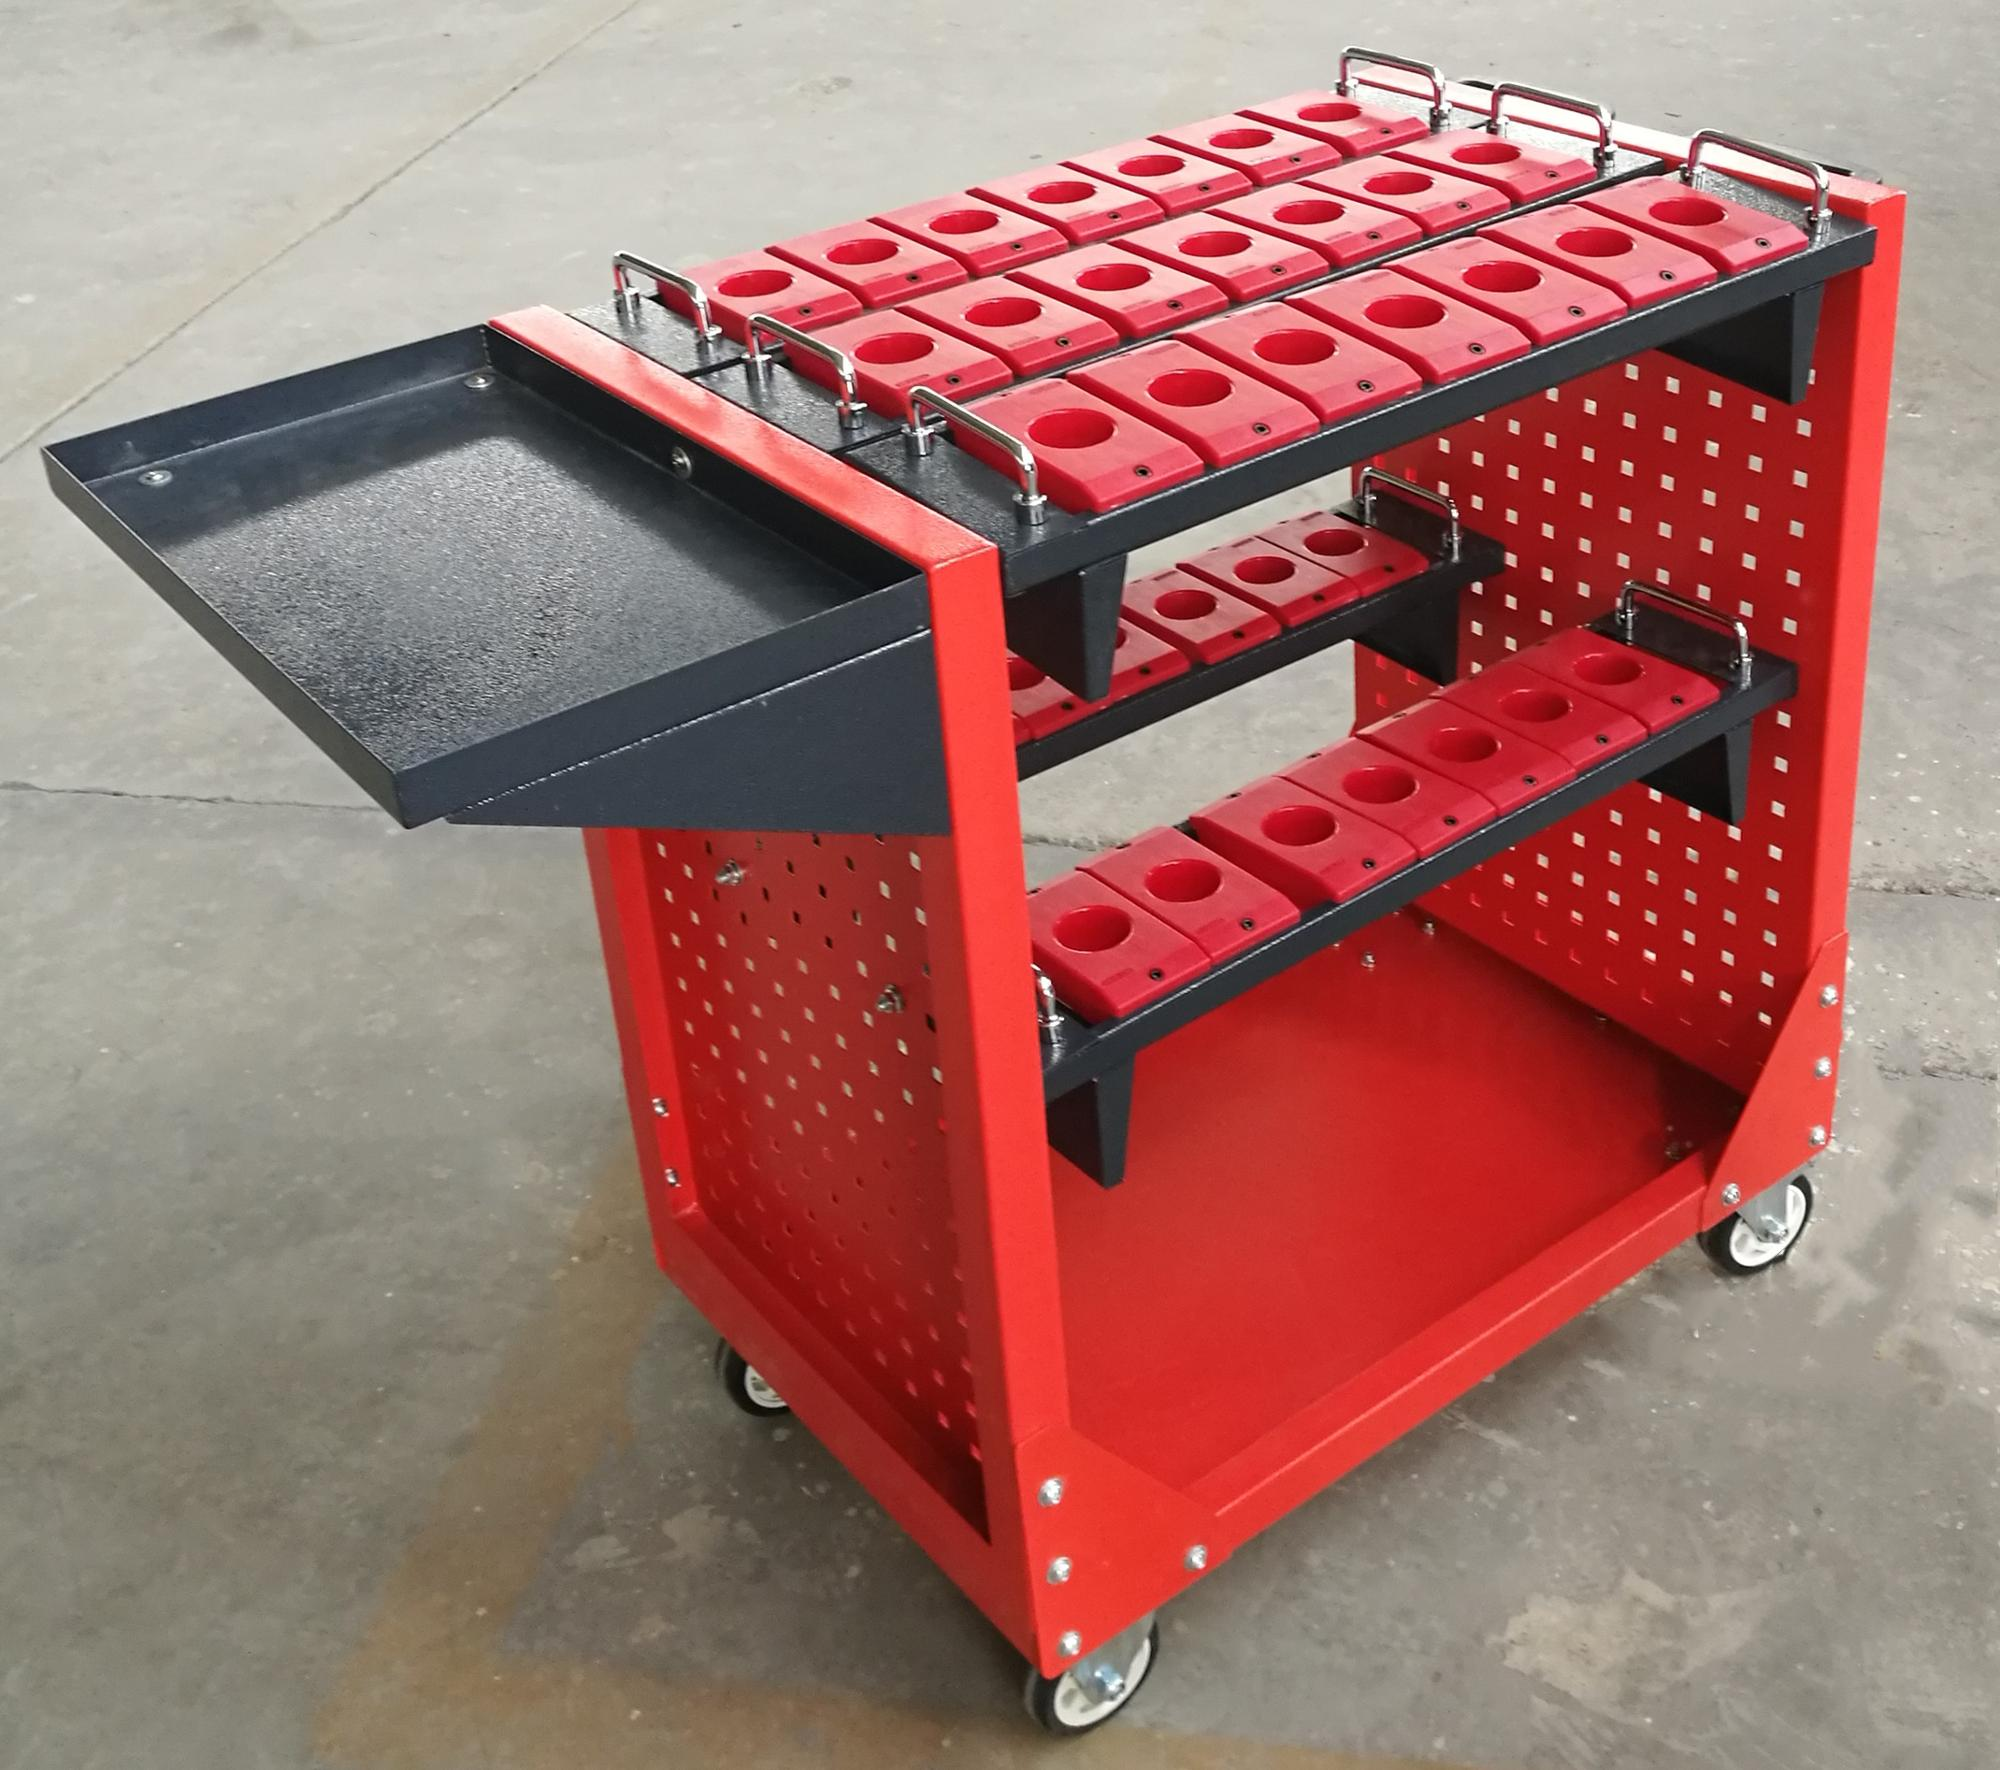 collapsible tool trolley BT HSK tool holder trolley cabinet